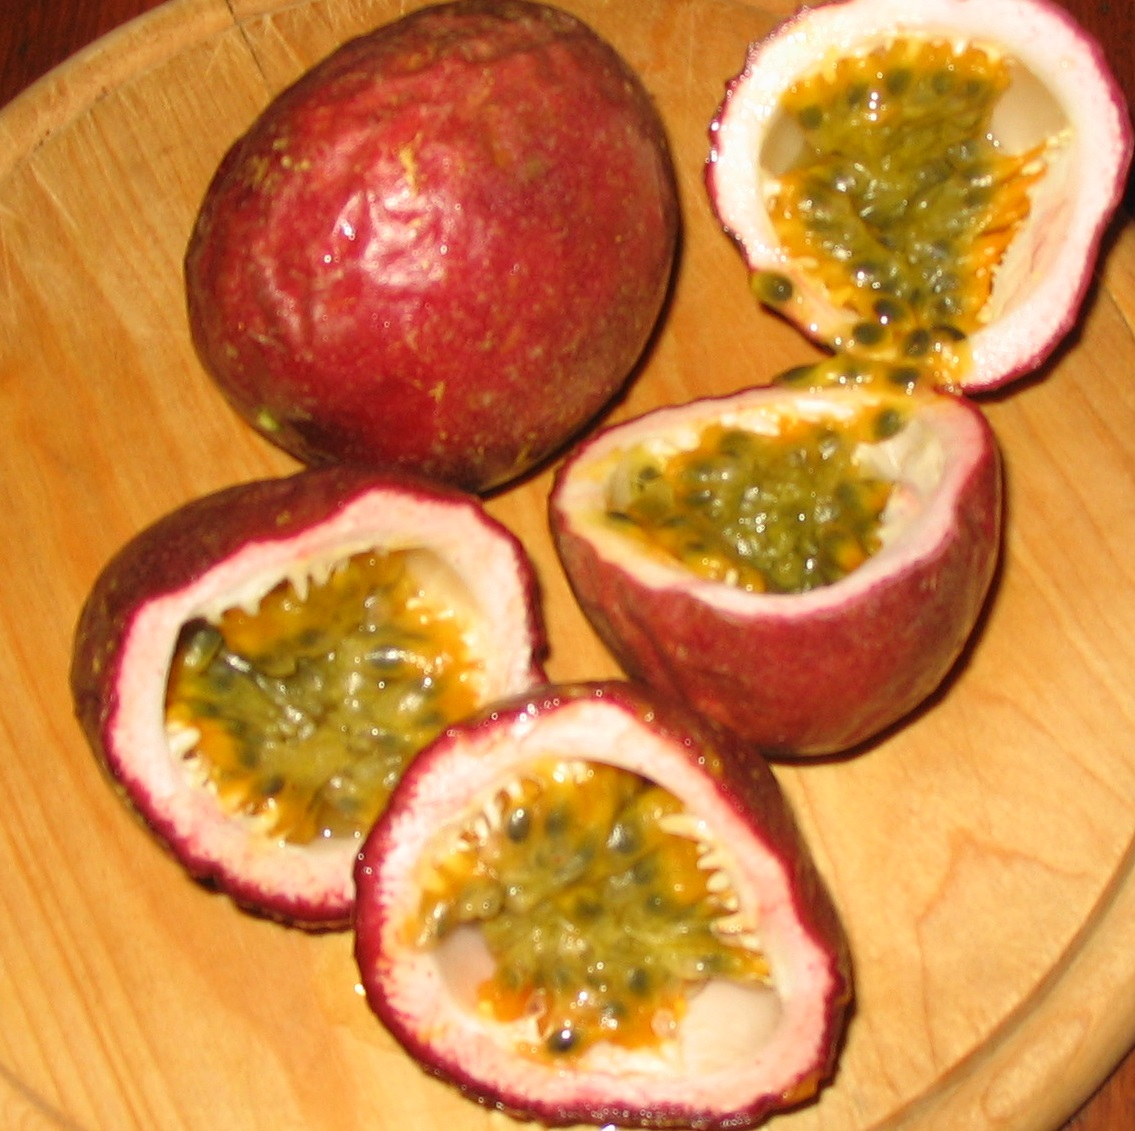 Passionfruit Non Grafted Sunshine Special Common Name